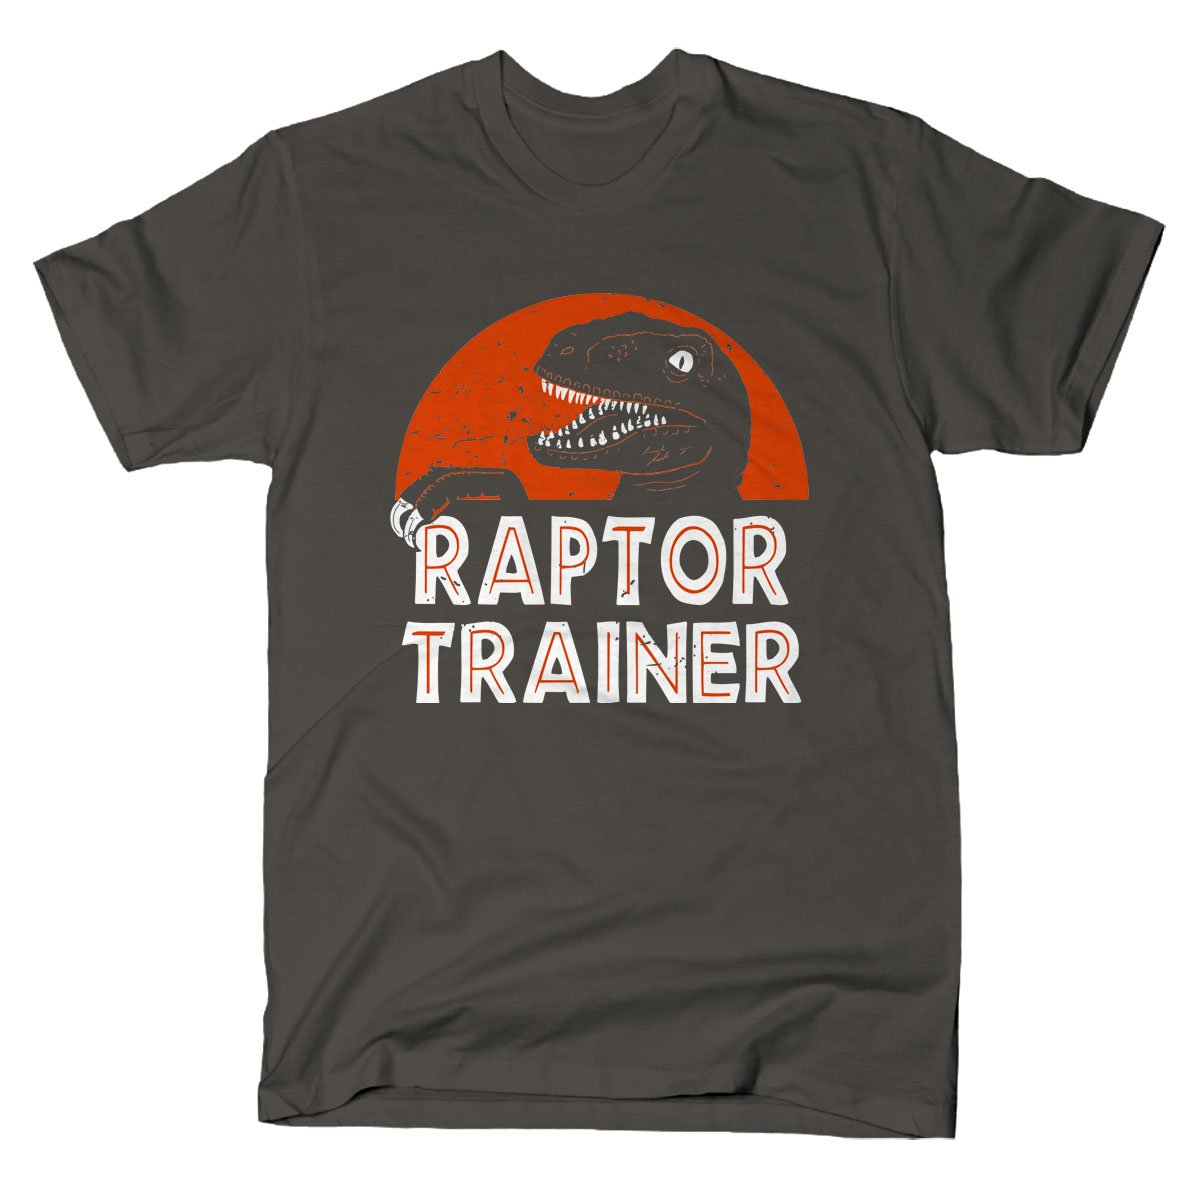 Raptor Trainer on Mens T-Shirt